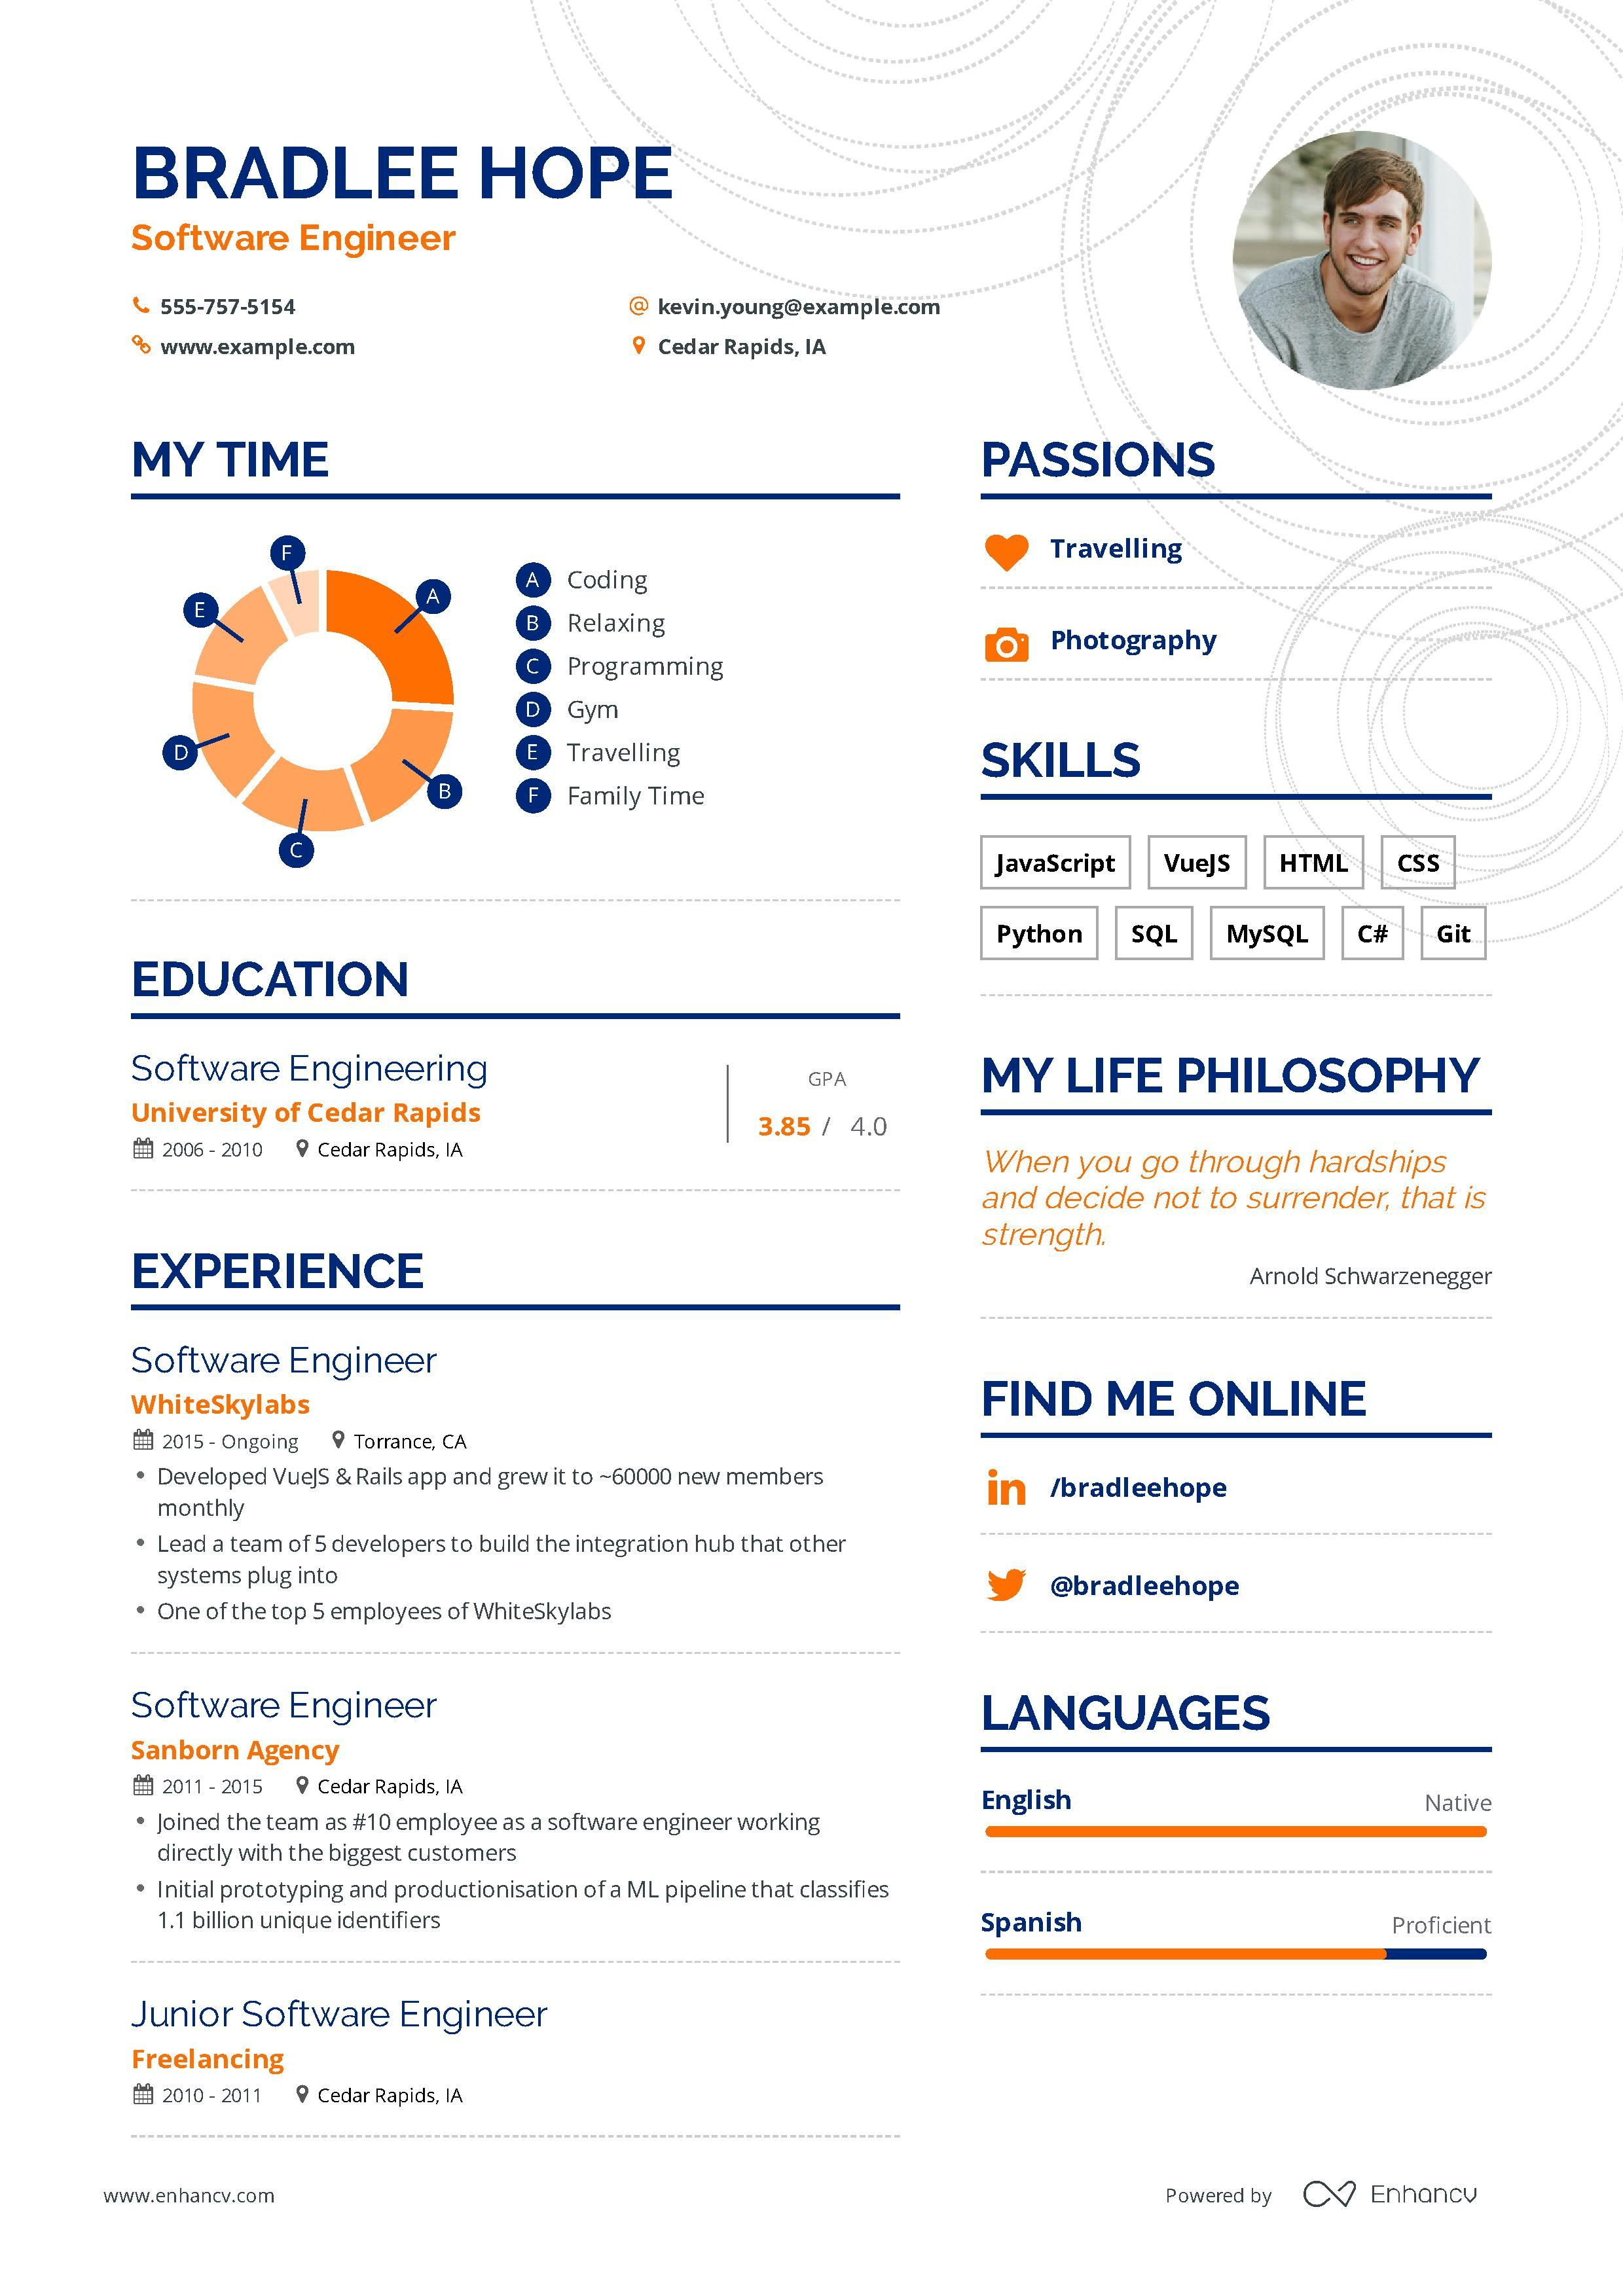 Software Engineer Resume Example And Guide For 2019 Engineering Resume Resume Examples Engineering Resume Templates